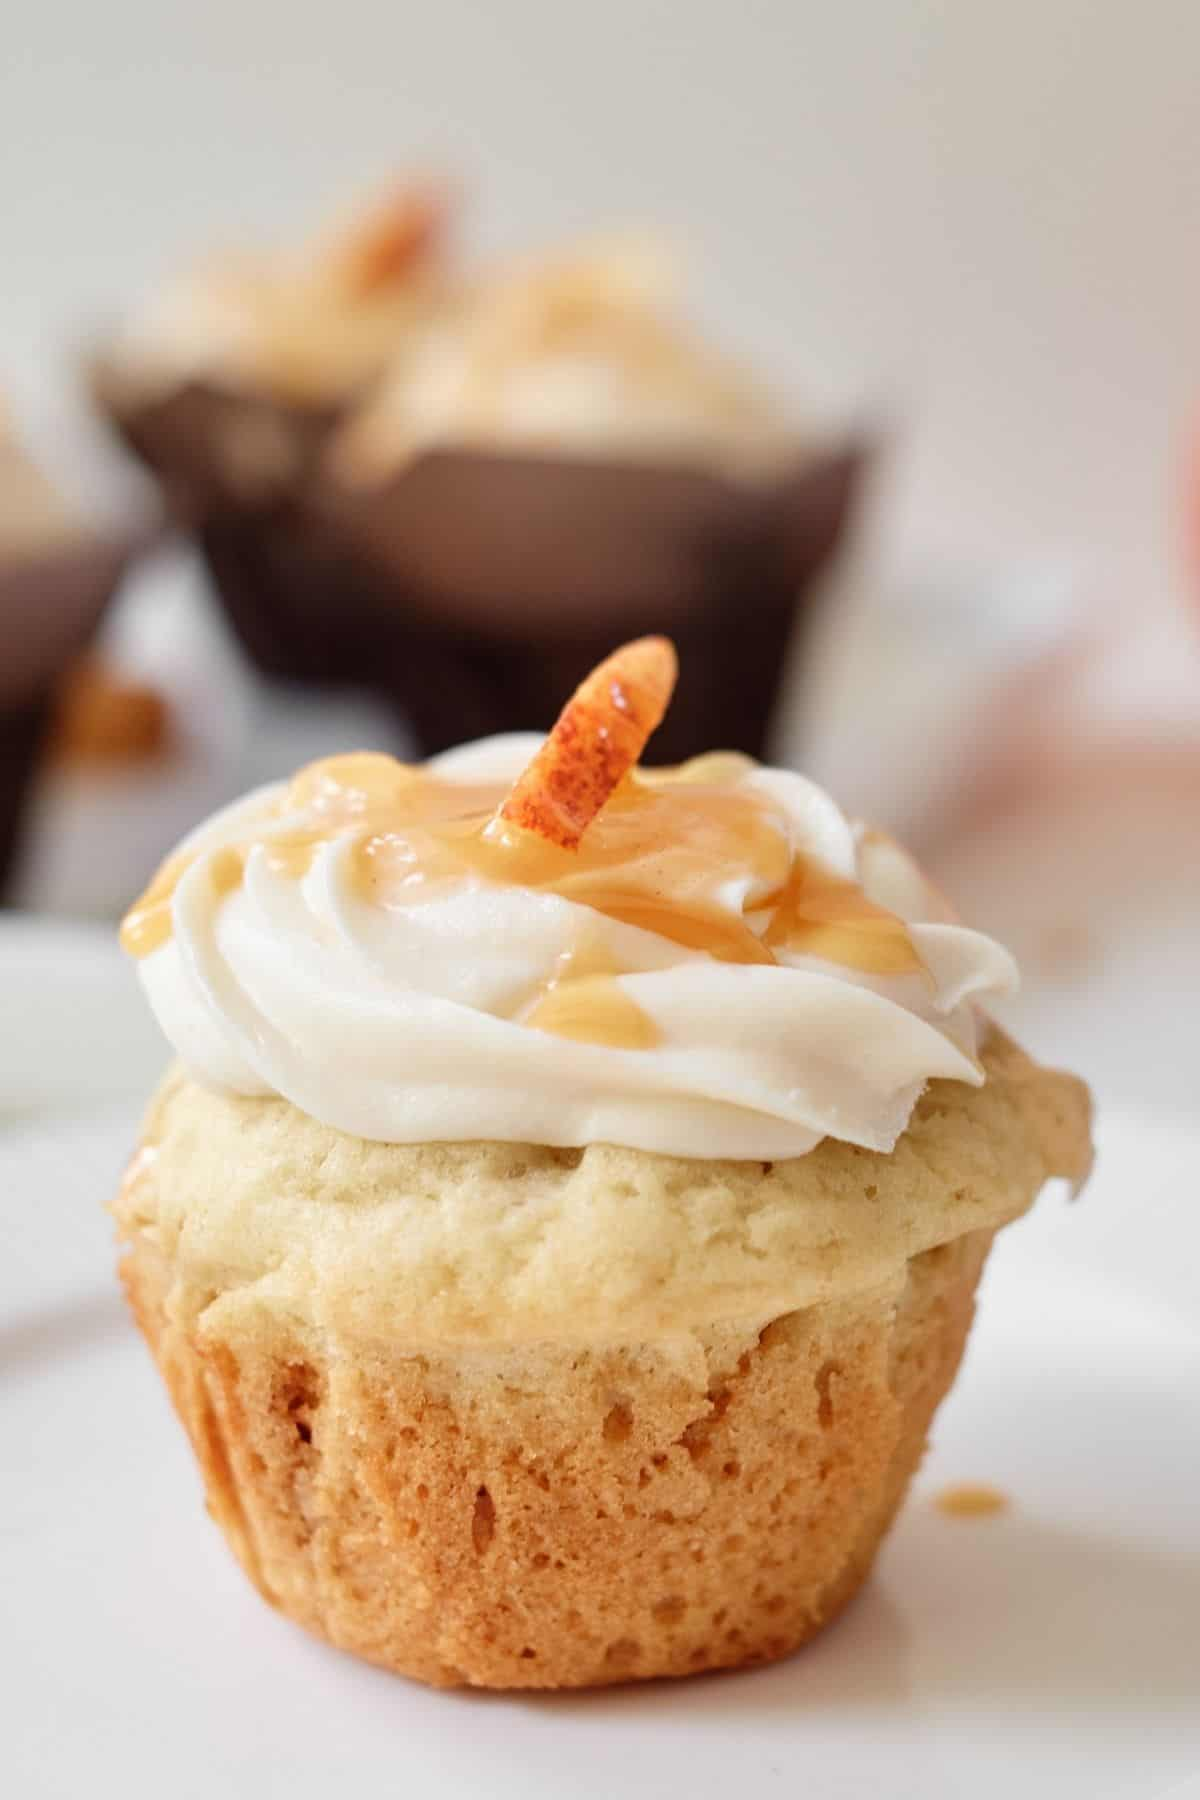 Apple cupcake without cupcake liner topped with caramel frosting and drizzled with caramel sauce and decorated with one apple slice on a white background